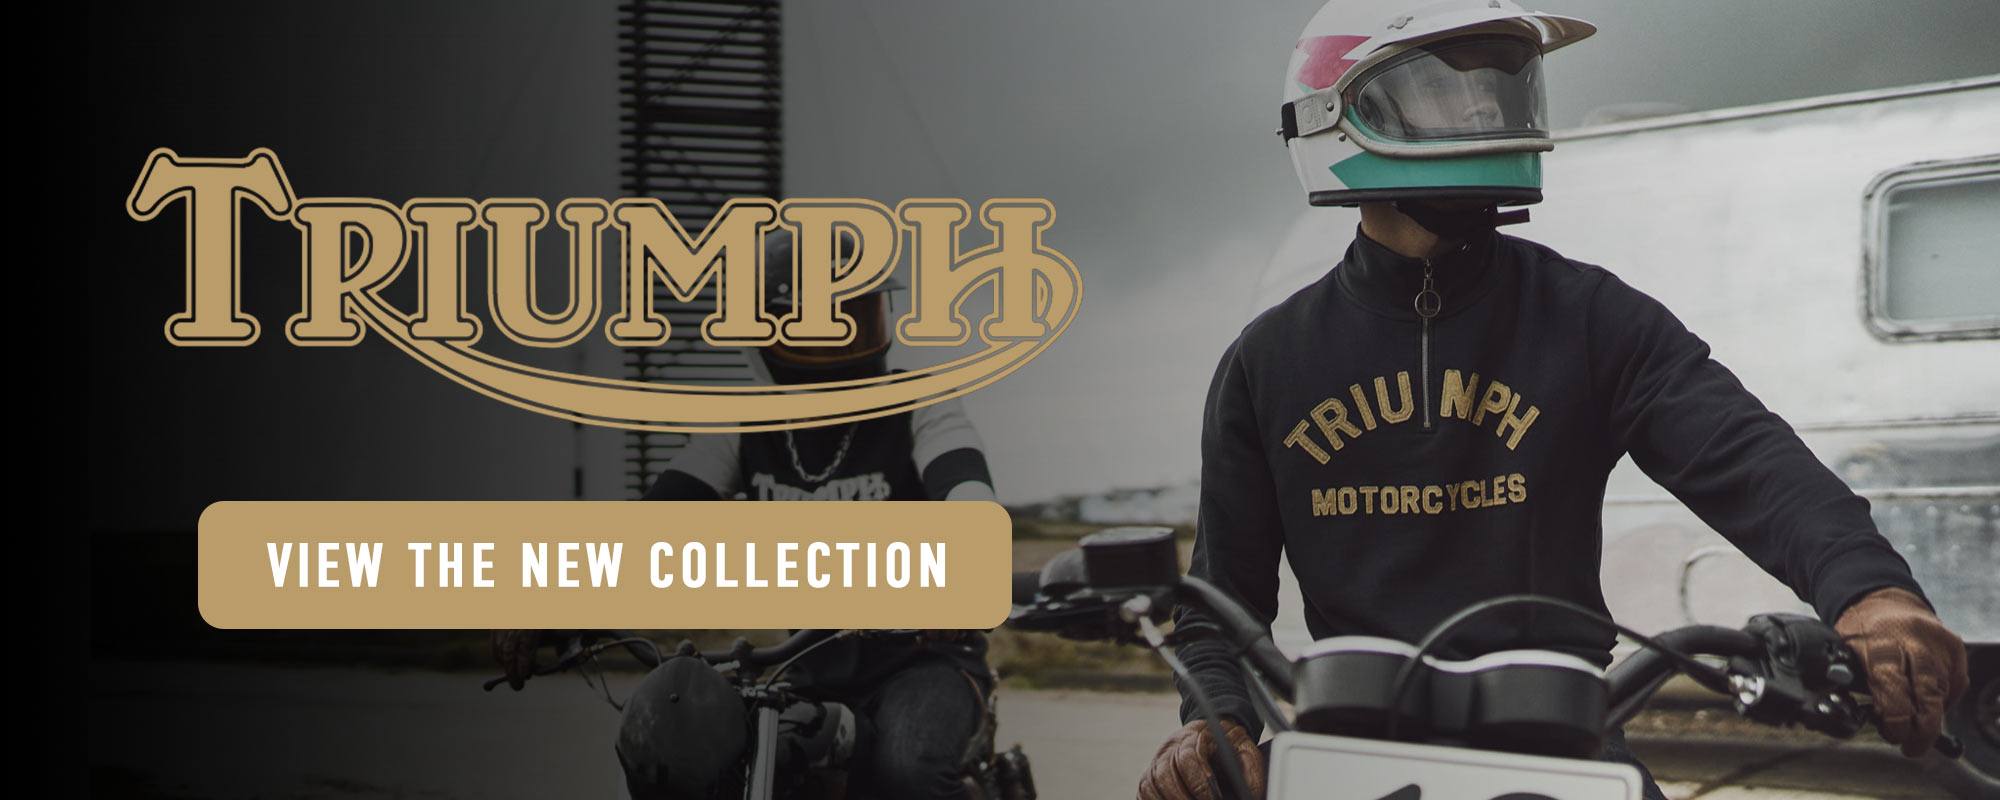 new triumph motorcycle clothing collection